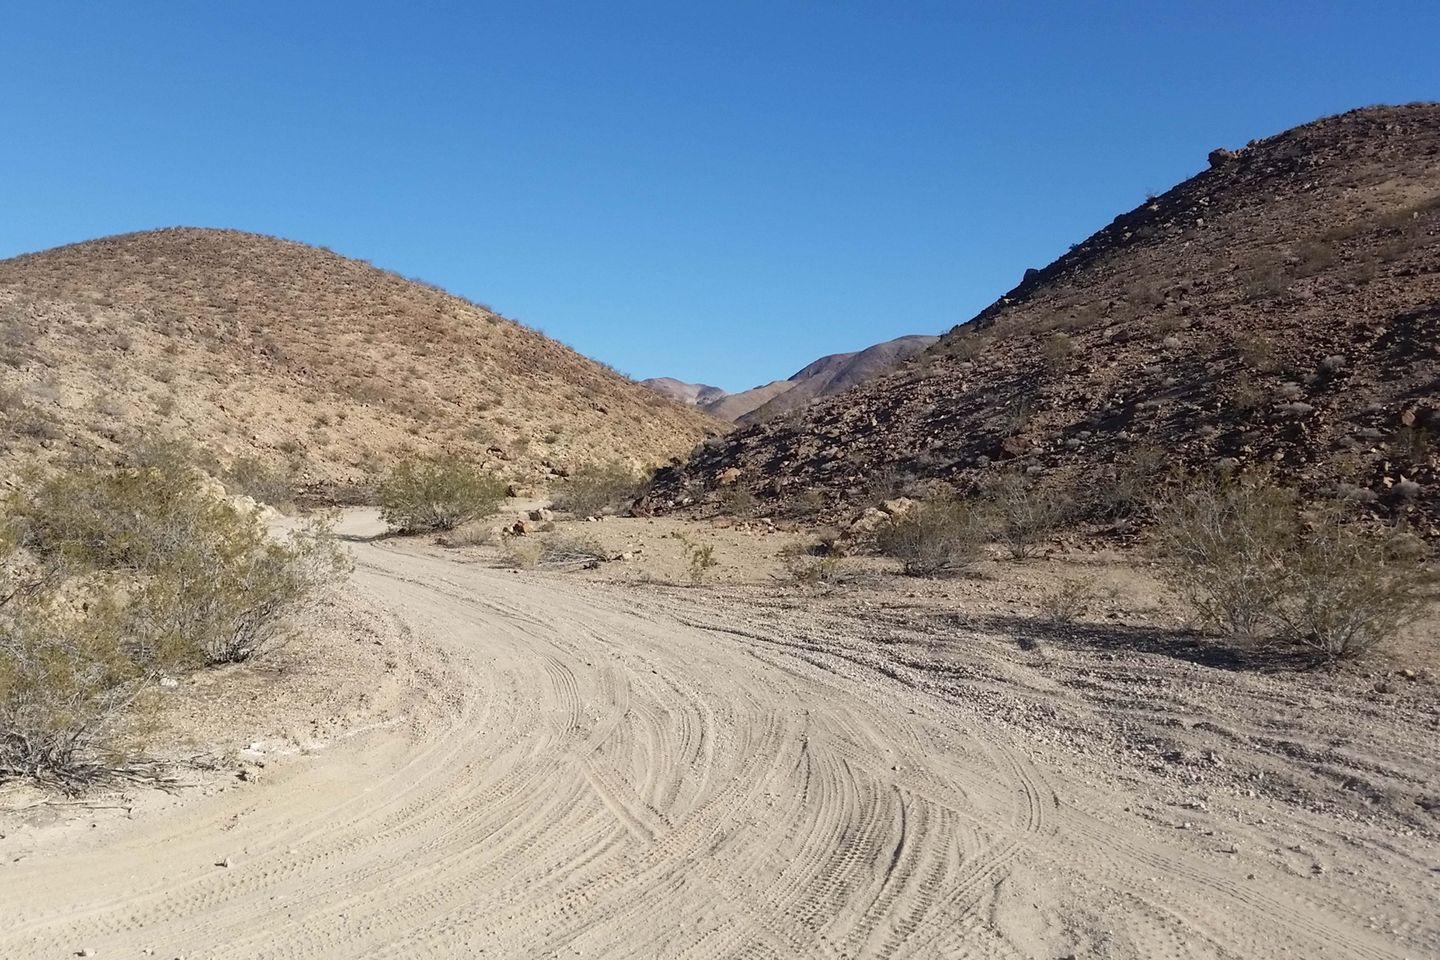 Mule Canyon - Waypoint 6: Tin Can Alley